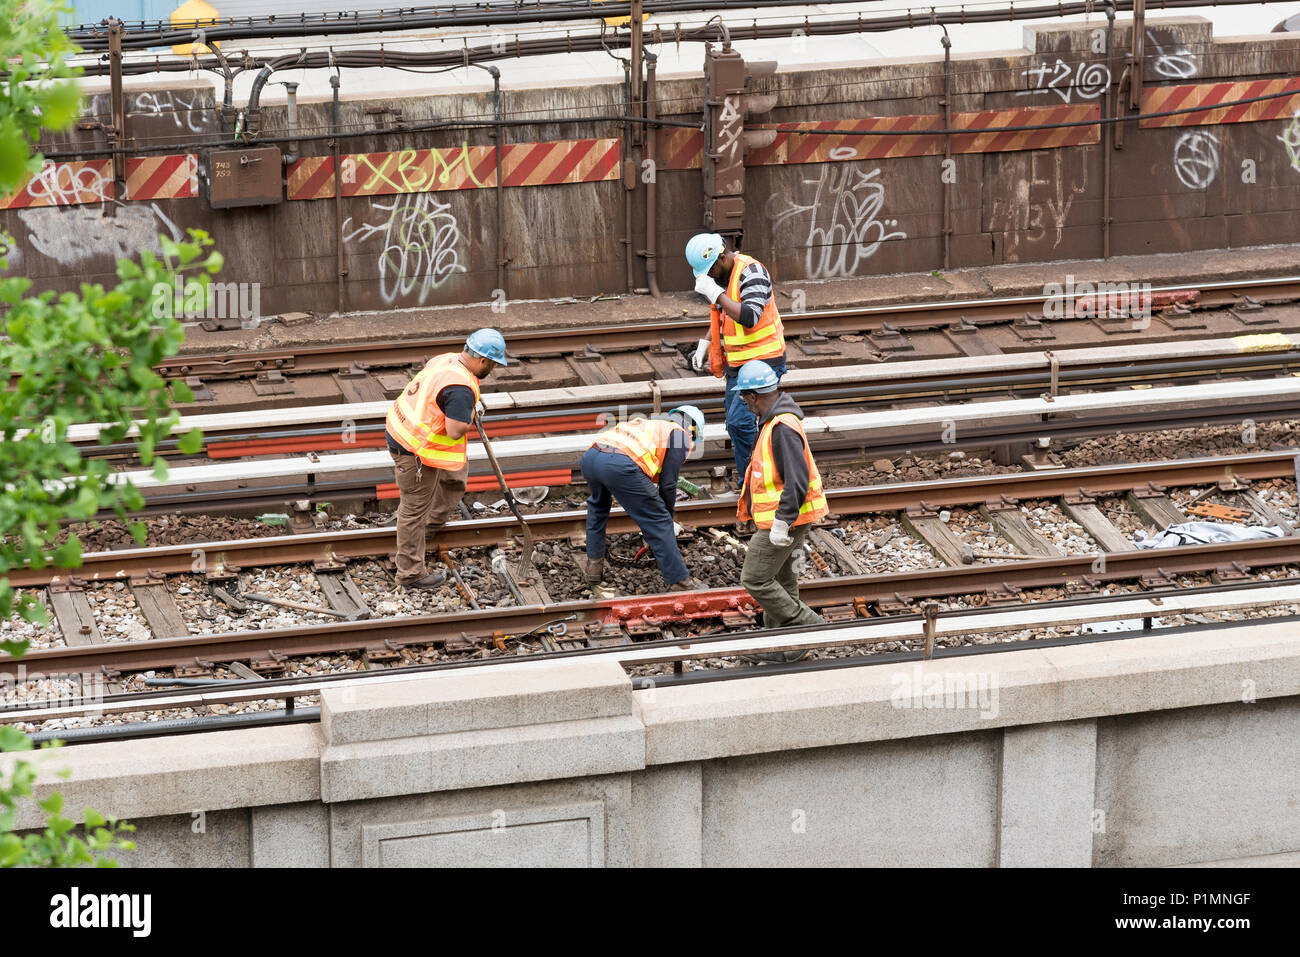 126th Street New York USA. Railroad workers working on the track. 2018 Stock Photo